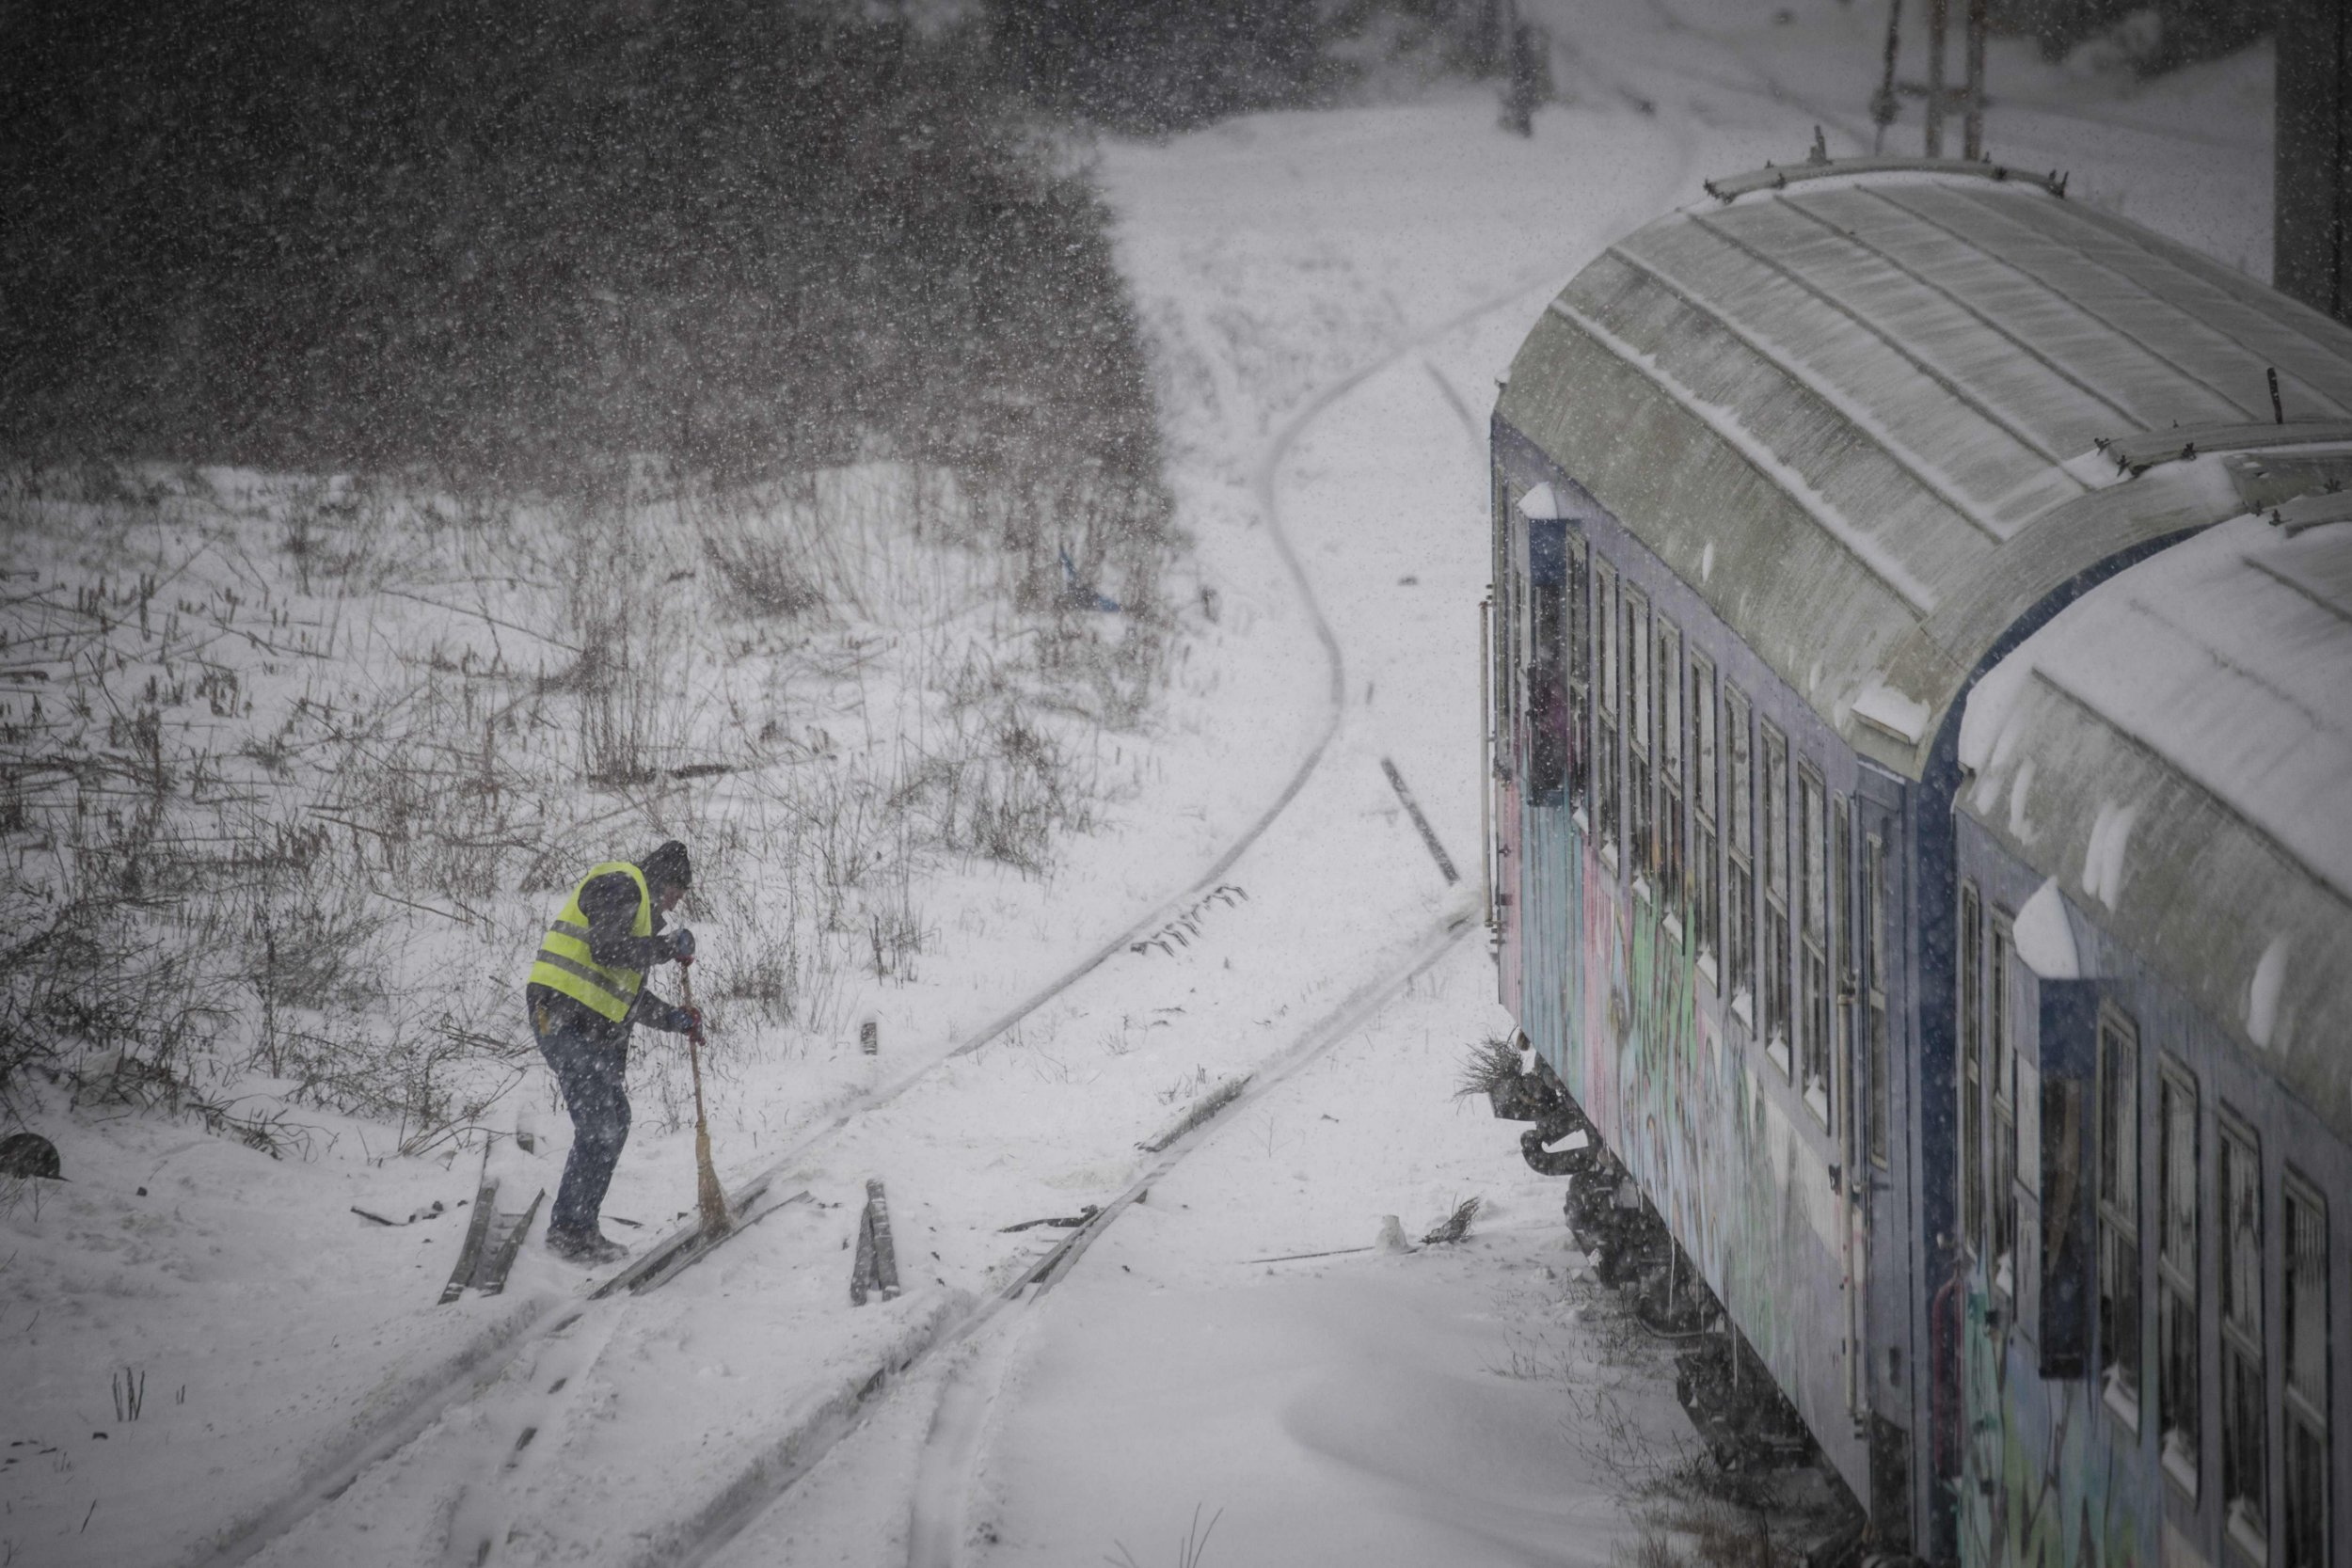 At least 8 people have died as Beast from the East batters Europe